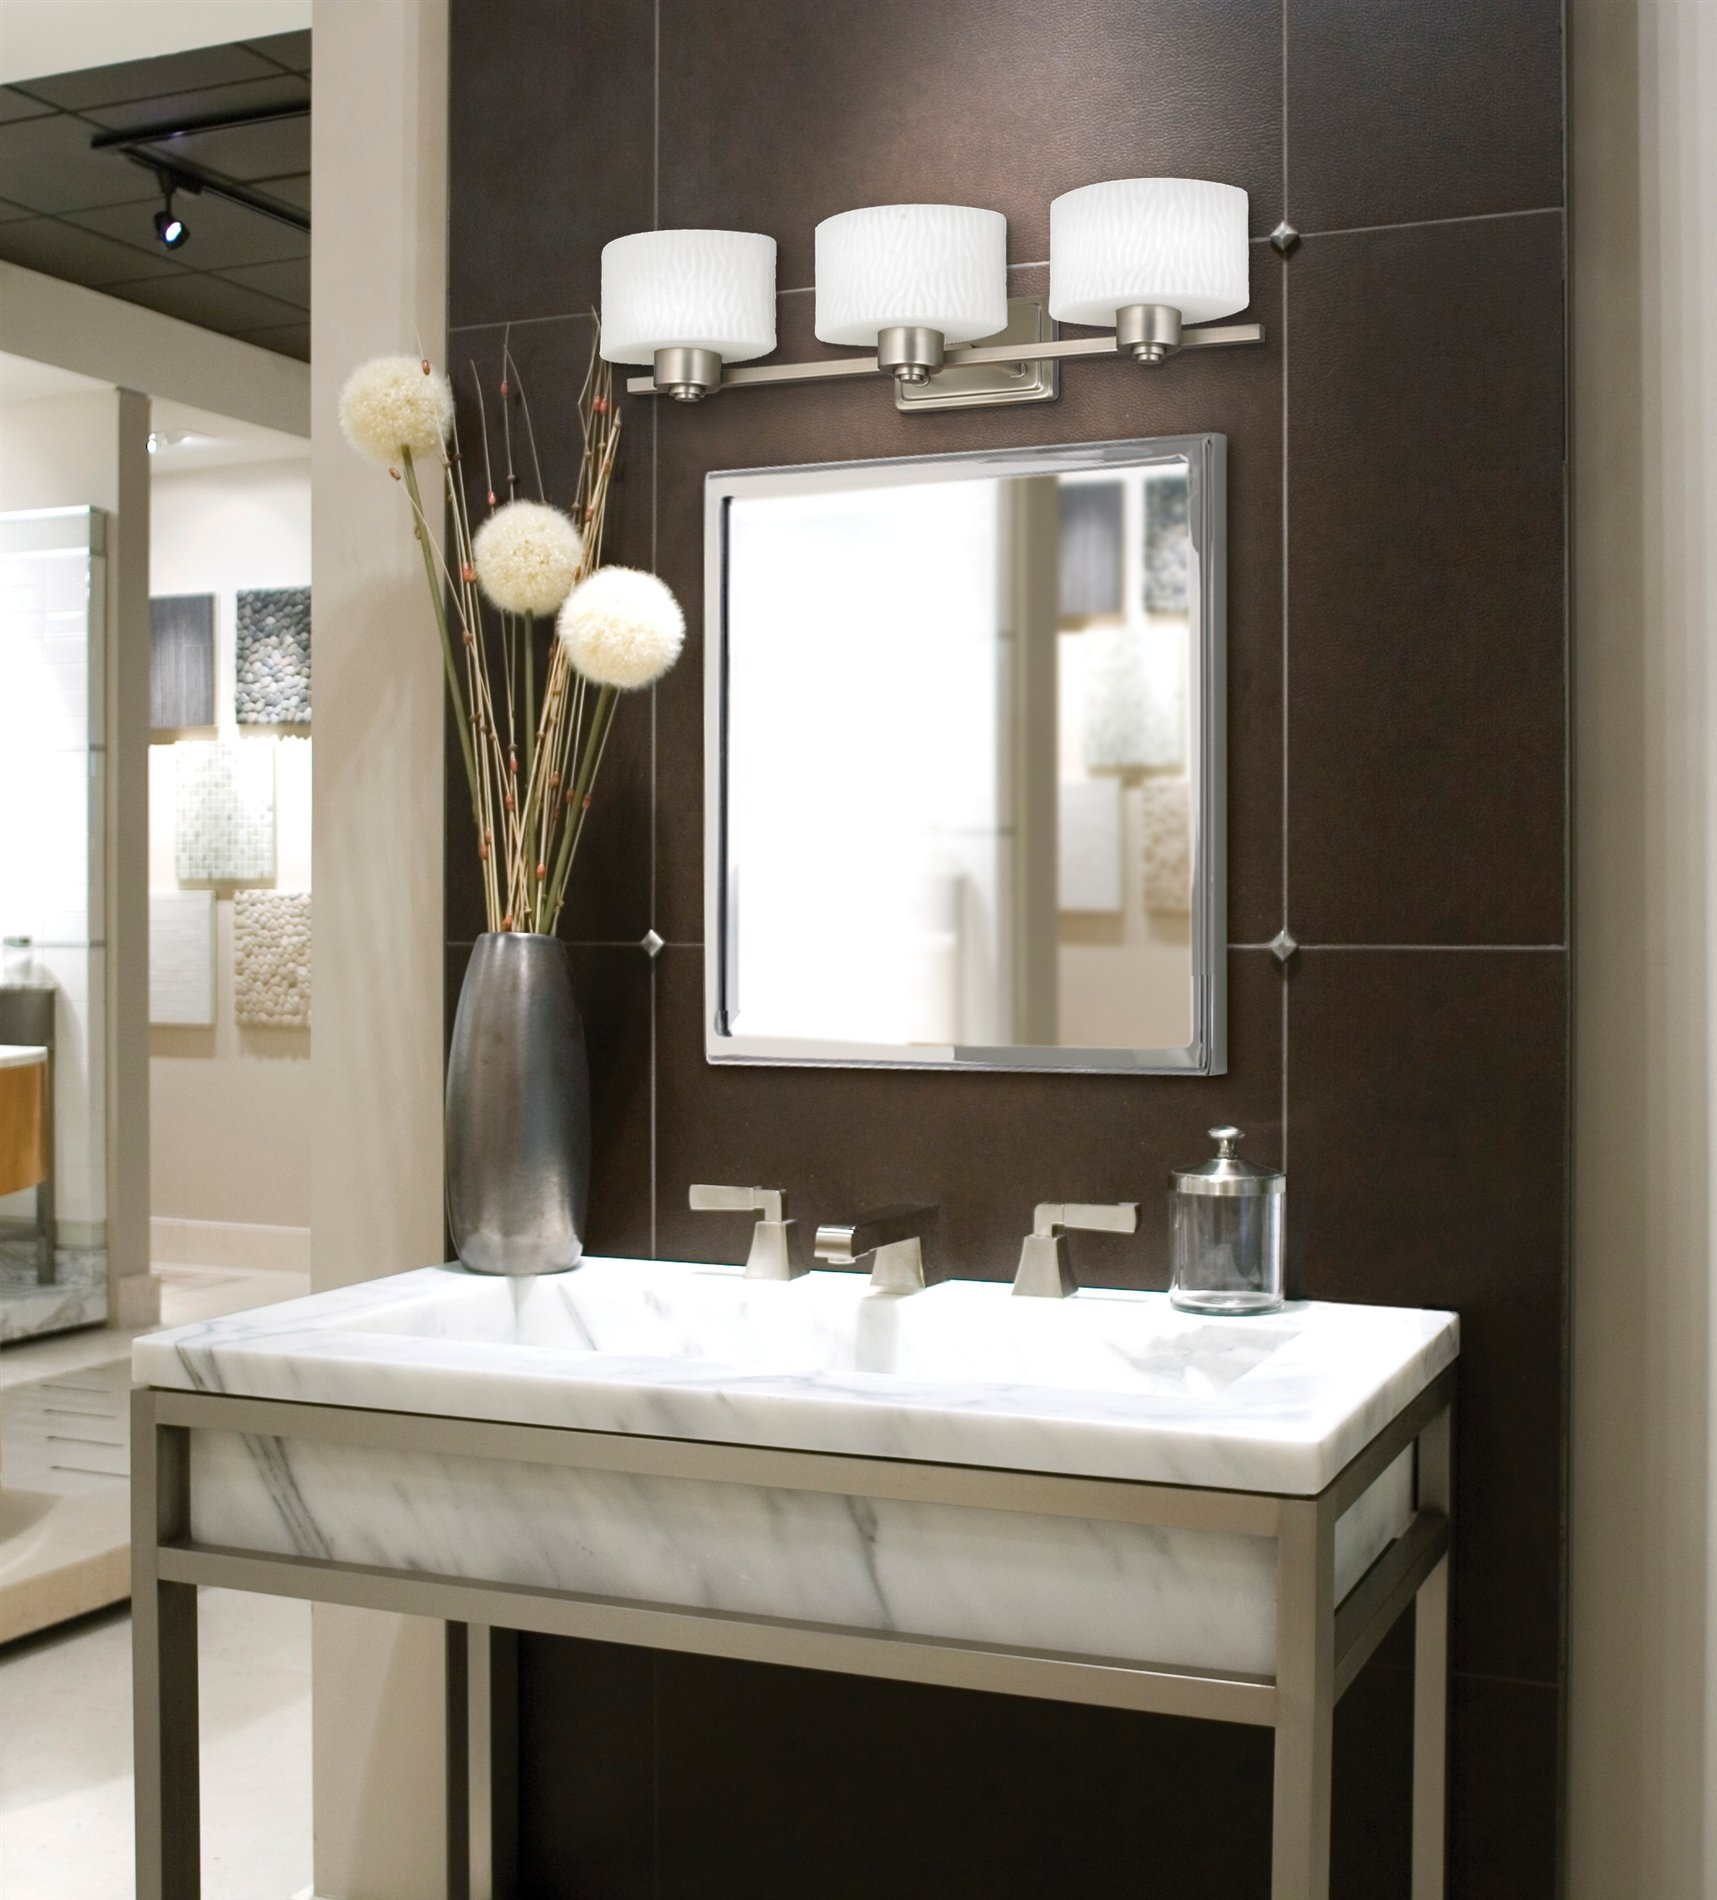 Best Light Fixtures For Bathroom Vanity